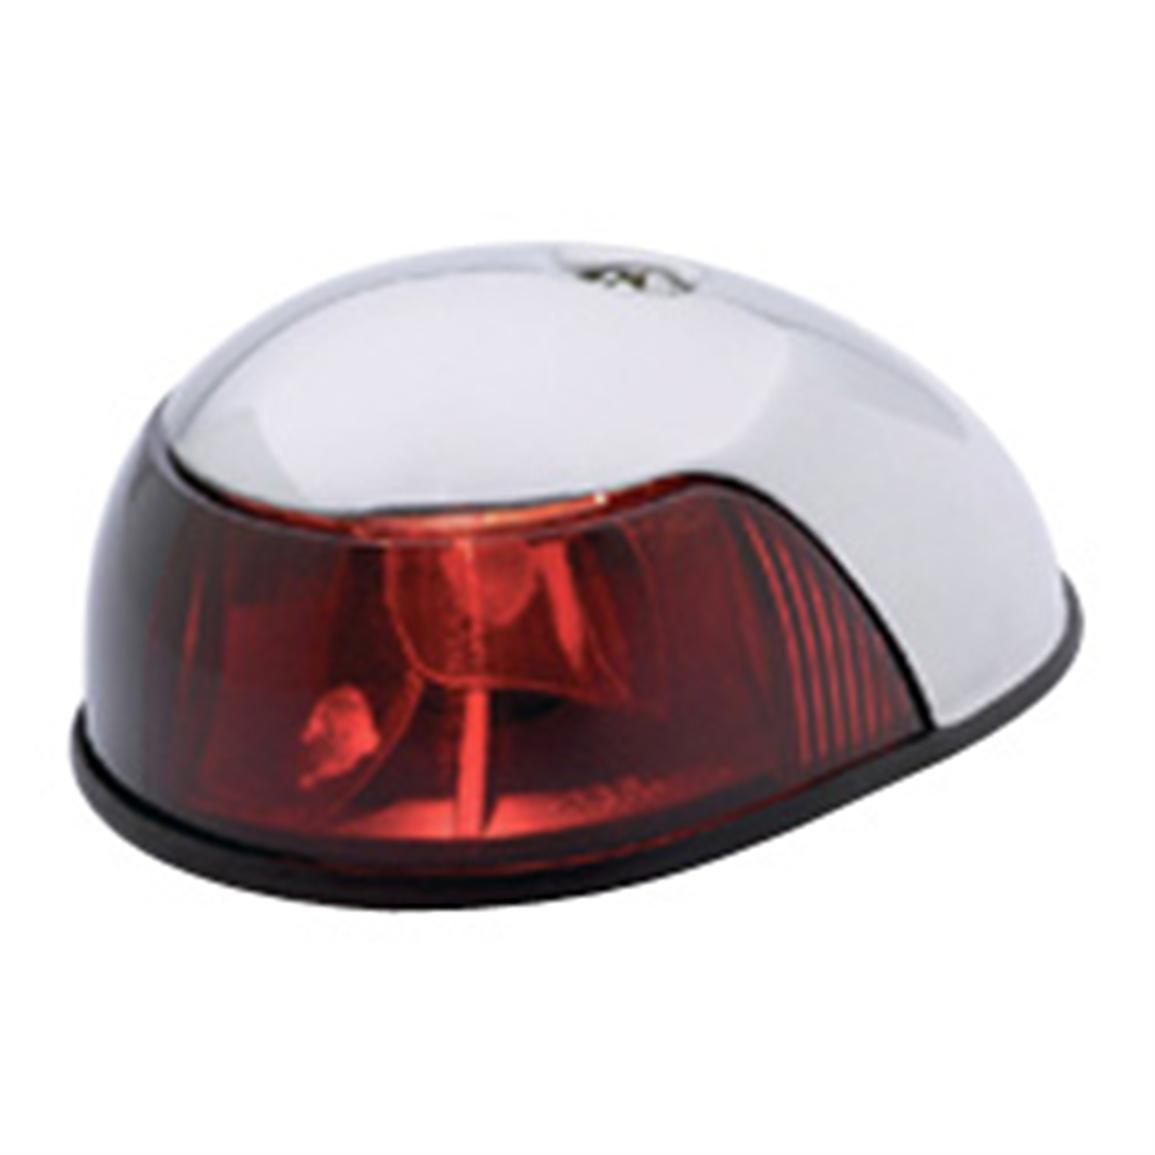 Attwood Stainless Steel Navigation Light, Red